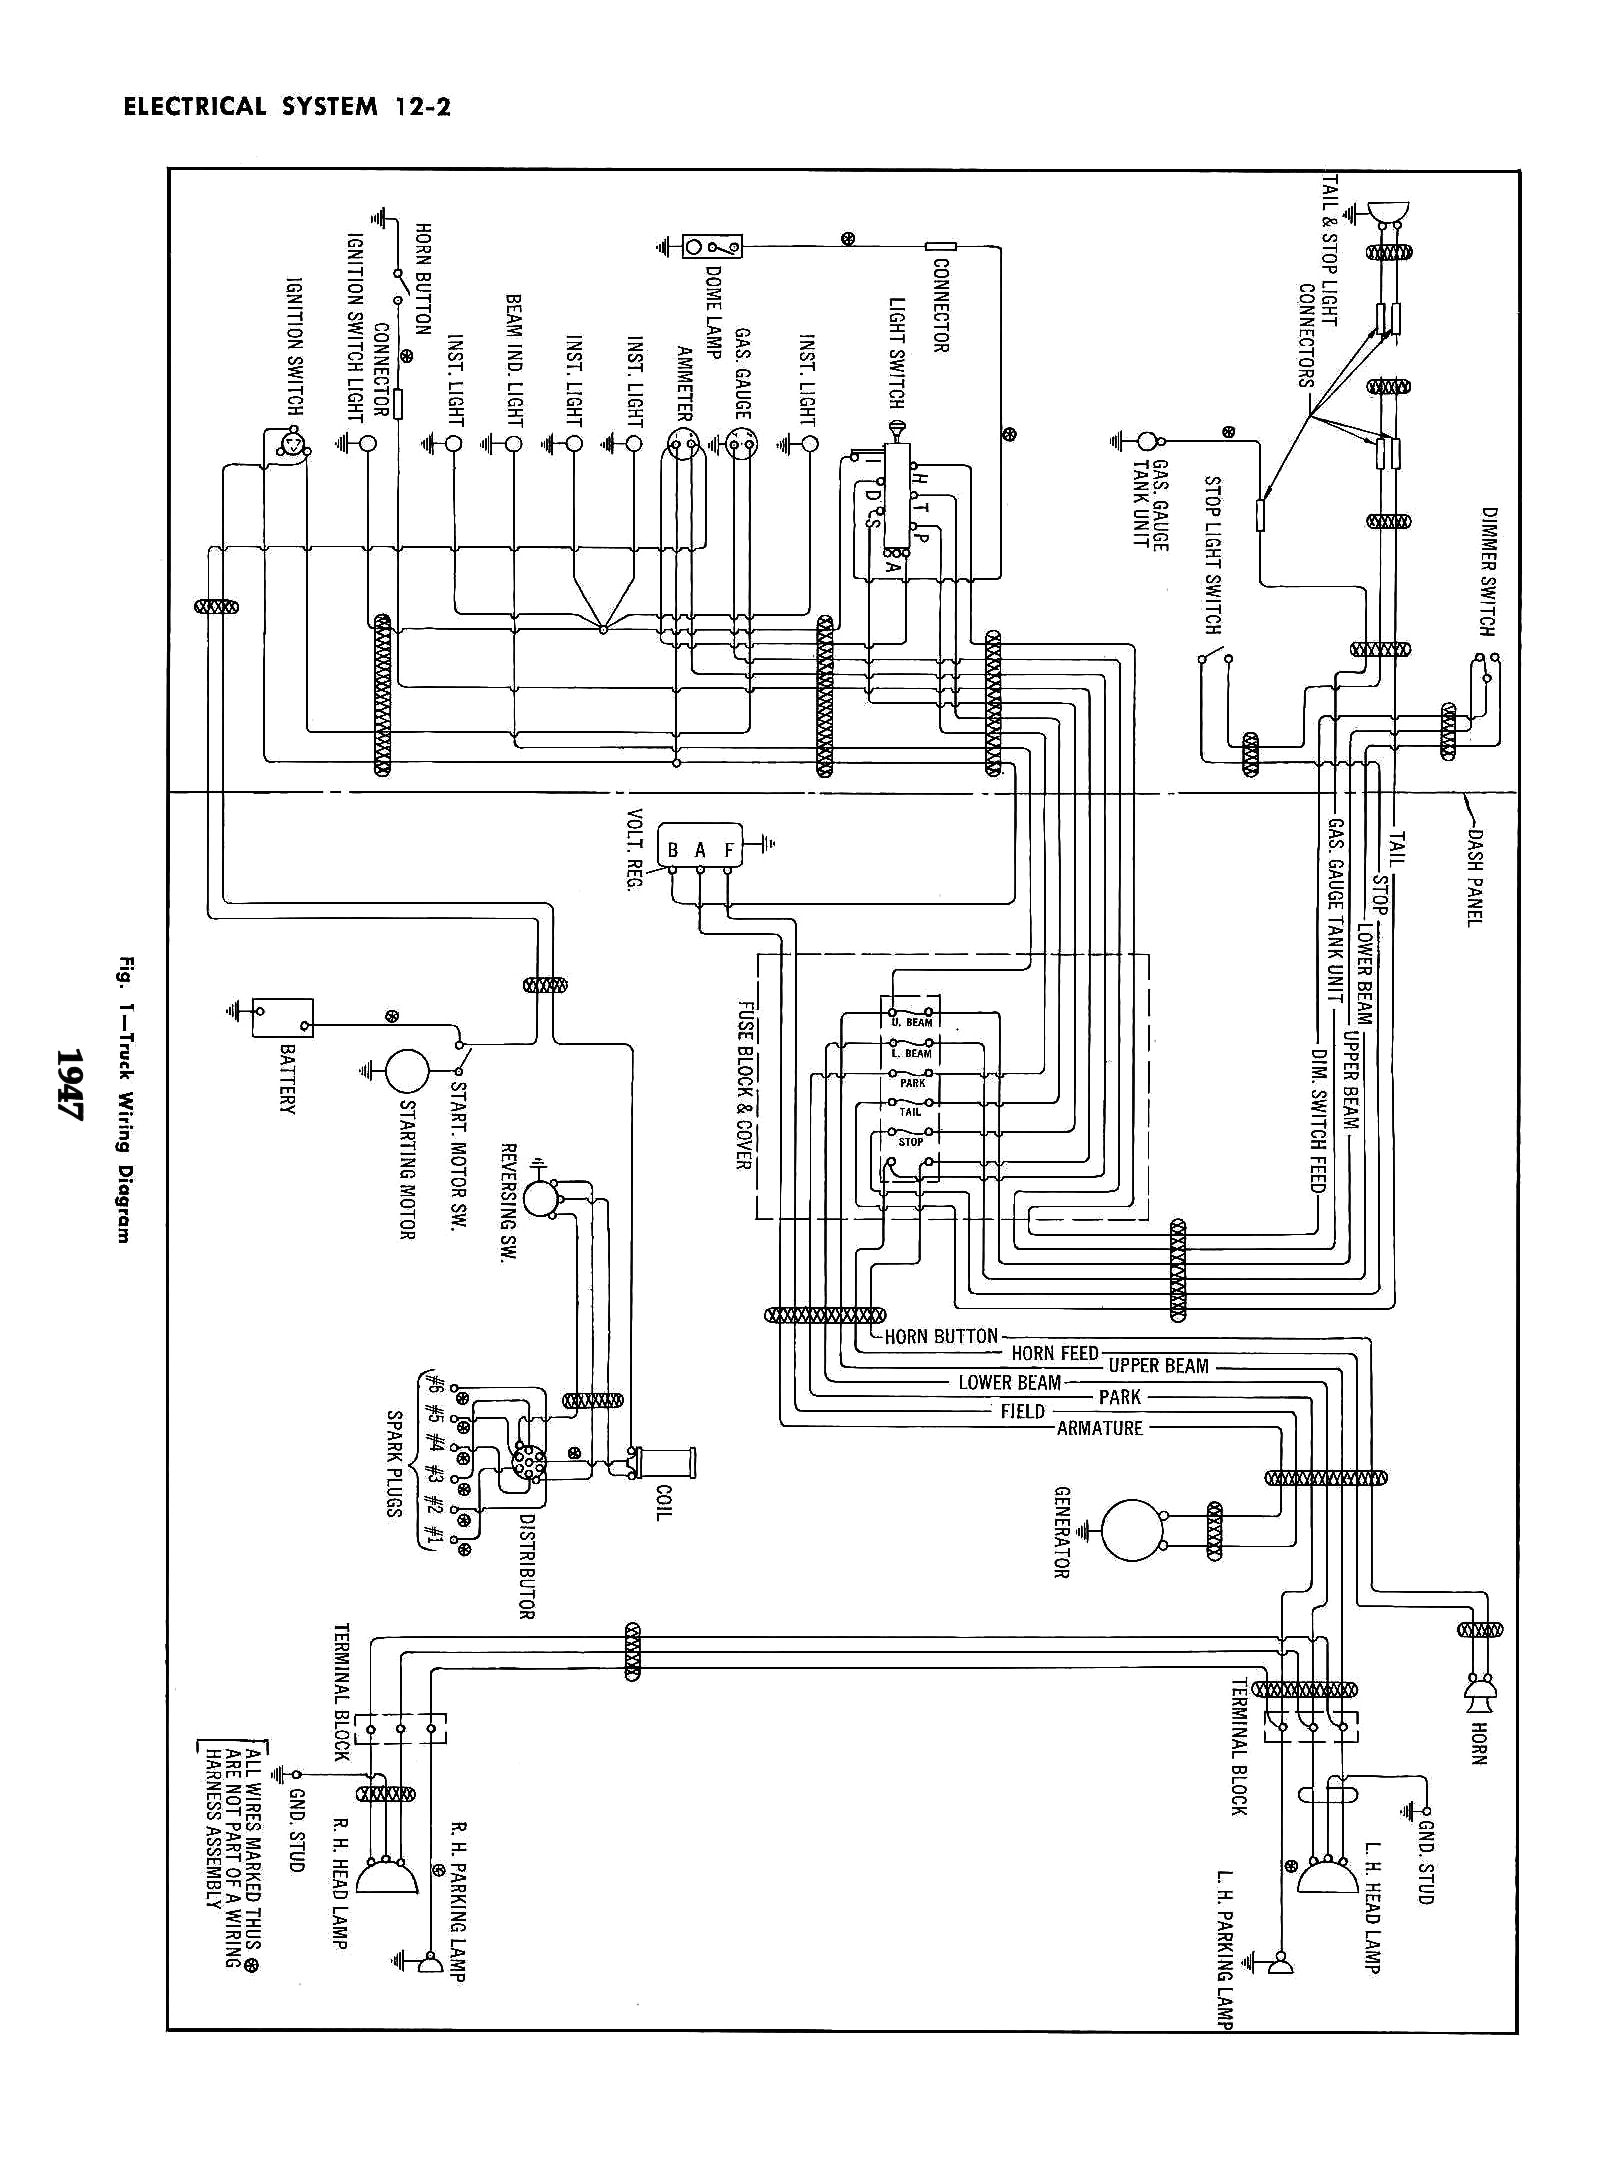 47ctsm1202 chevy wiring diagrams Chevy Truck Wiring Diagram at bayanpartner.co